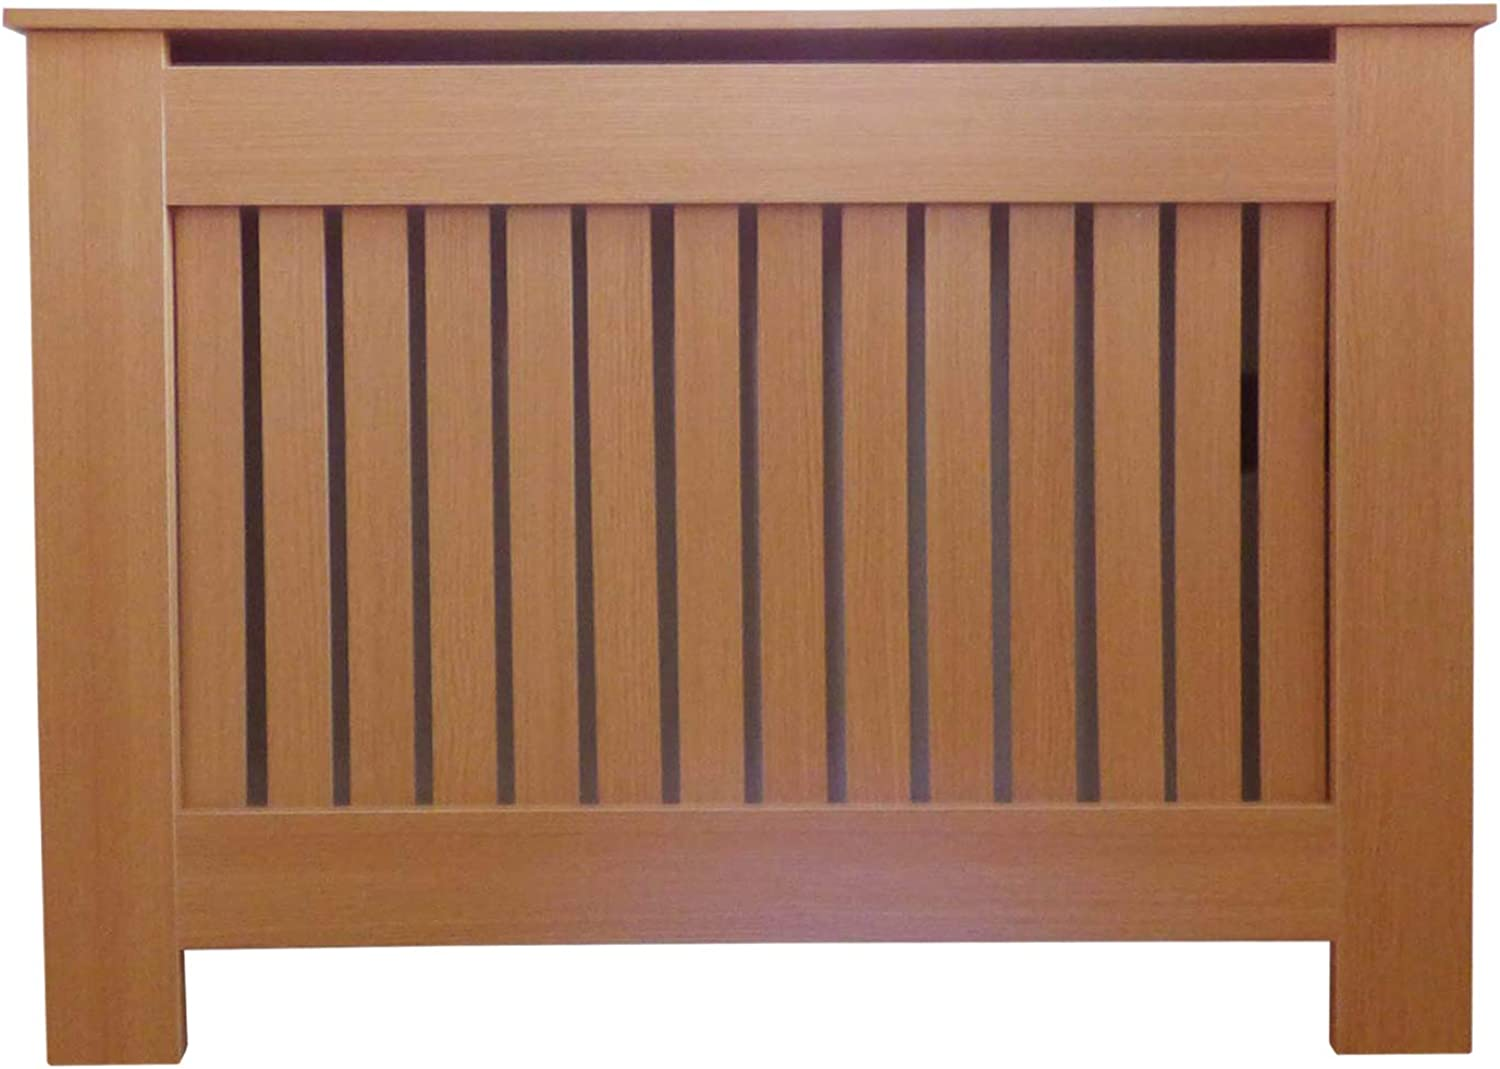 Jack Stonehouse Oak Modern MDF Radiator Cover Cabinet with greenical